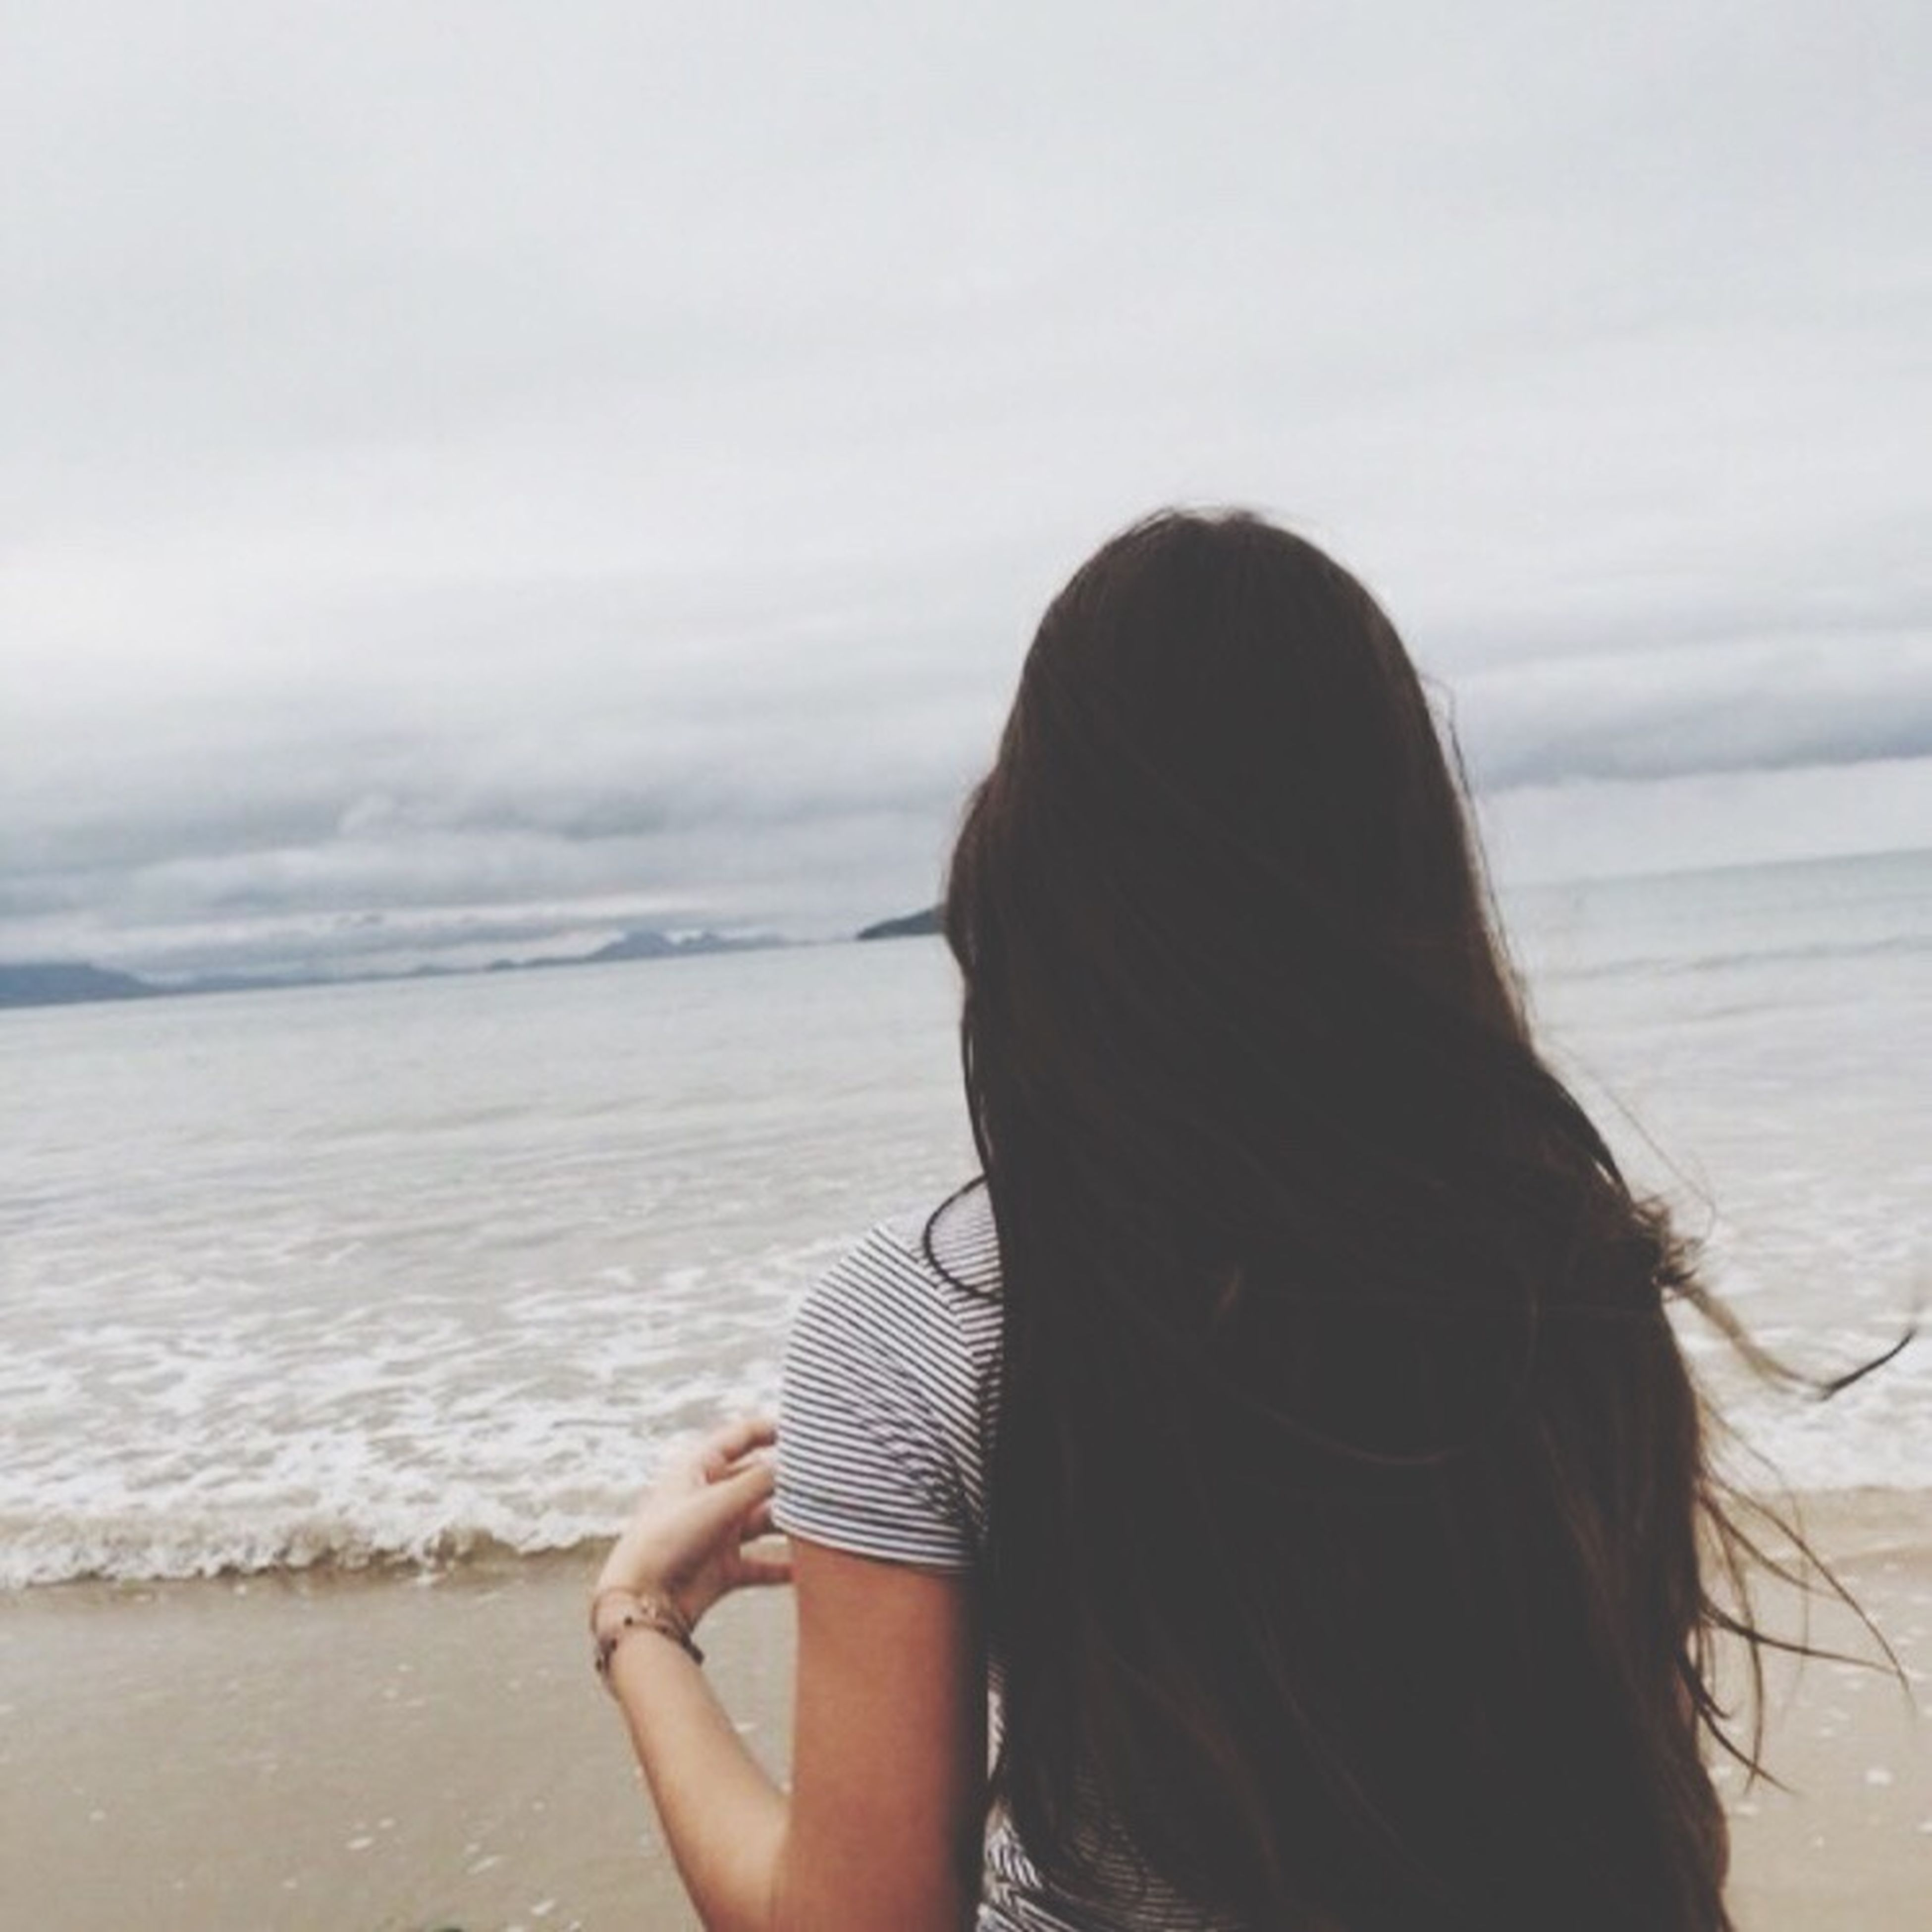 sea, beach, horizon over water, water, one person, real people, rear view, long hair, nature, sand, leisure activity, wave, lifestyles, day, outdoors, beauty in nature, vacations, women, scenics, sky, young adult, close-up, adult, people